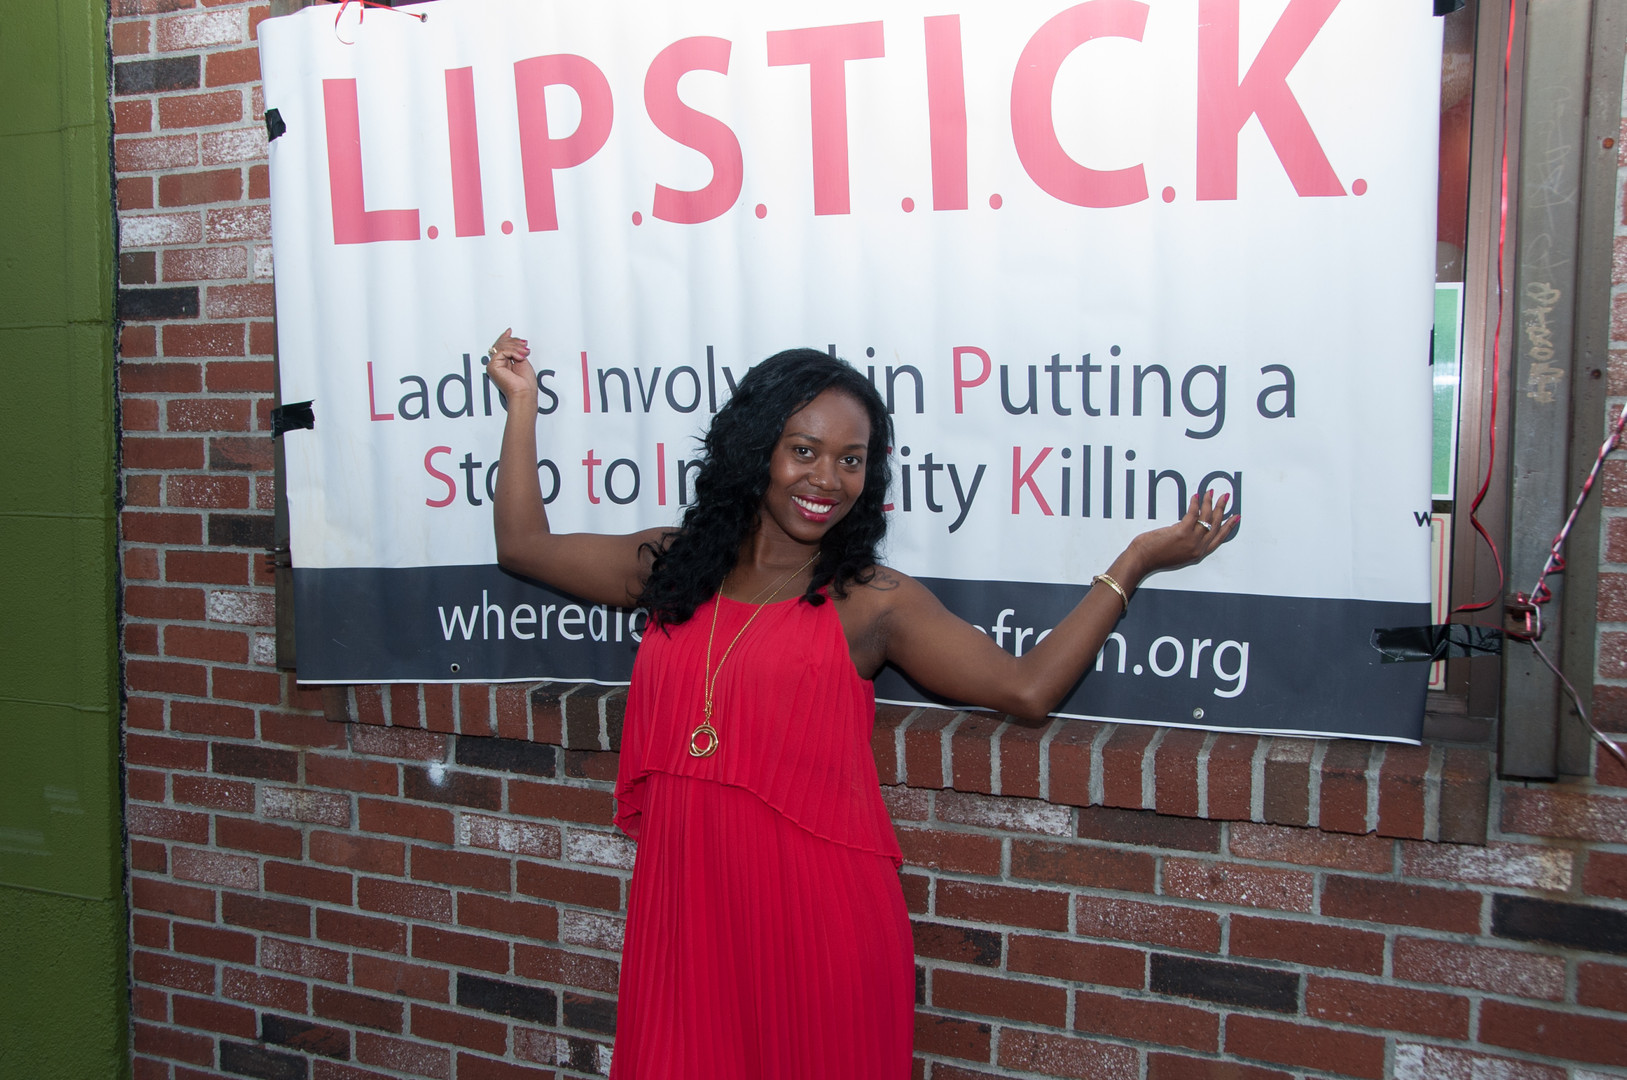 LIPSTICK - Jay Z Partner to Save Lives